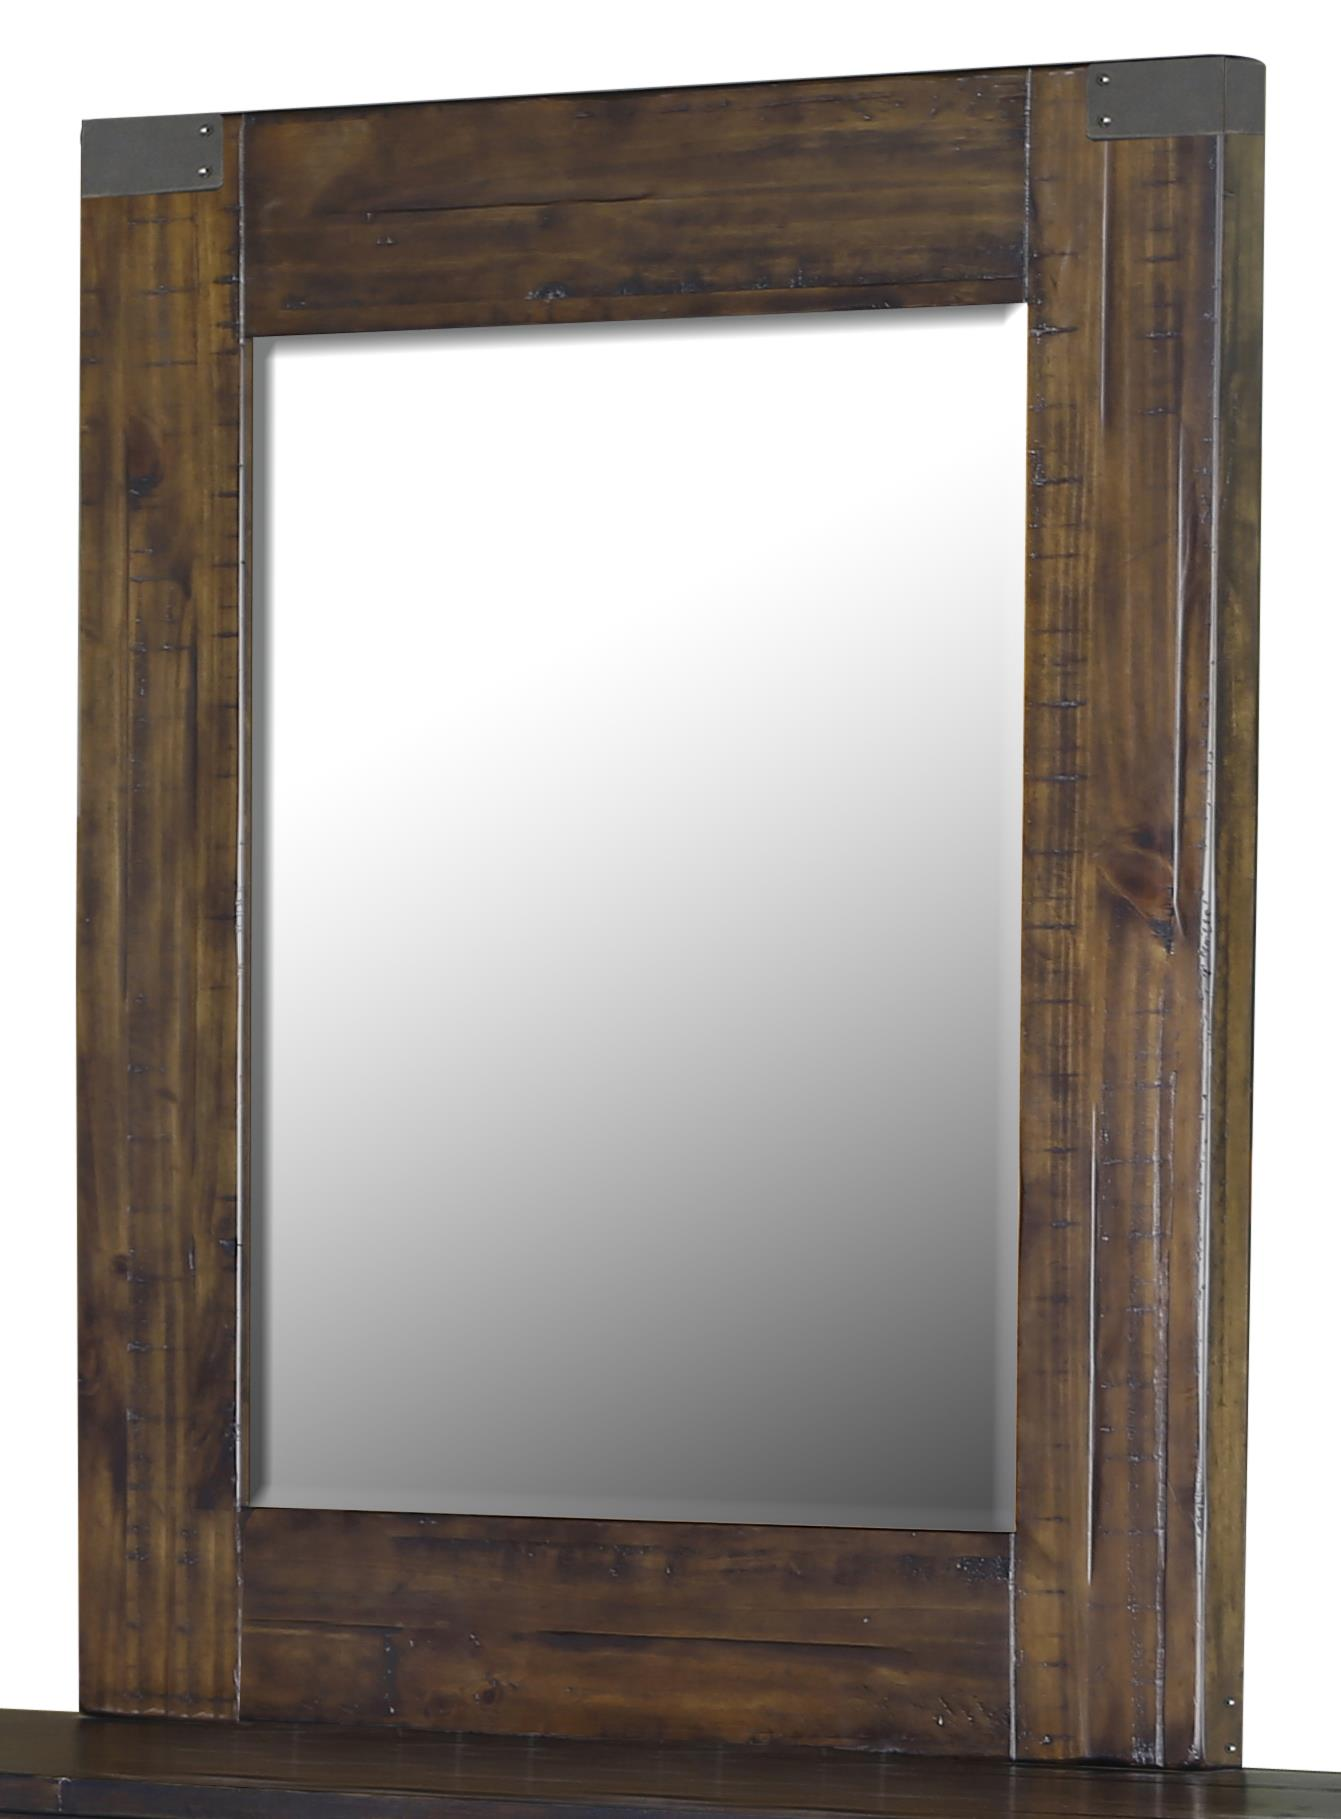 Portrait Mirror with Rustic Pine Frame